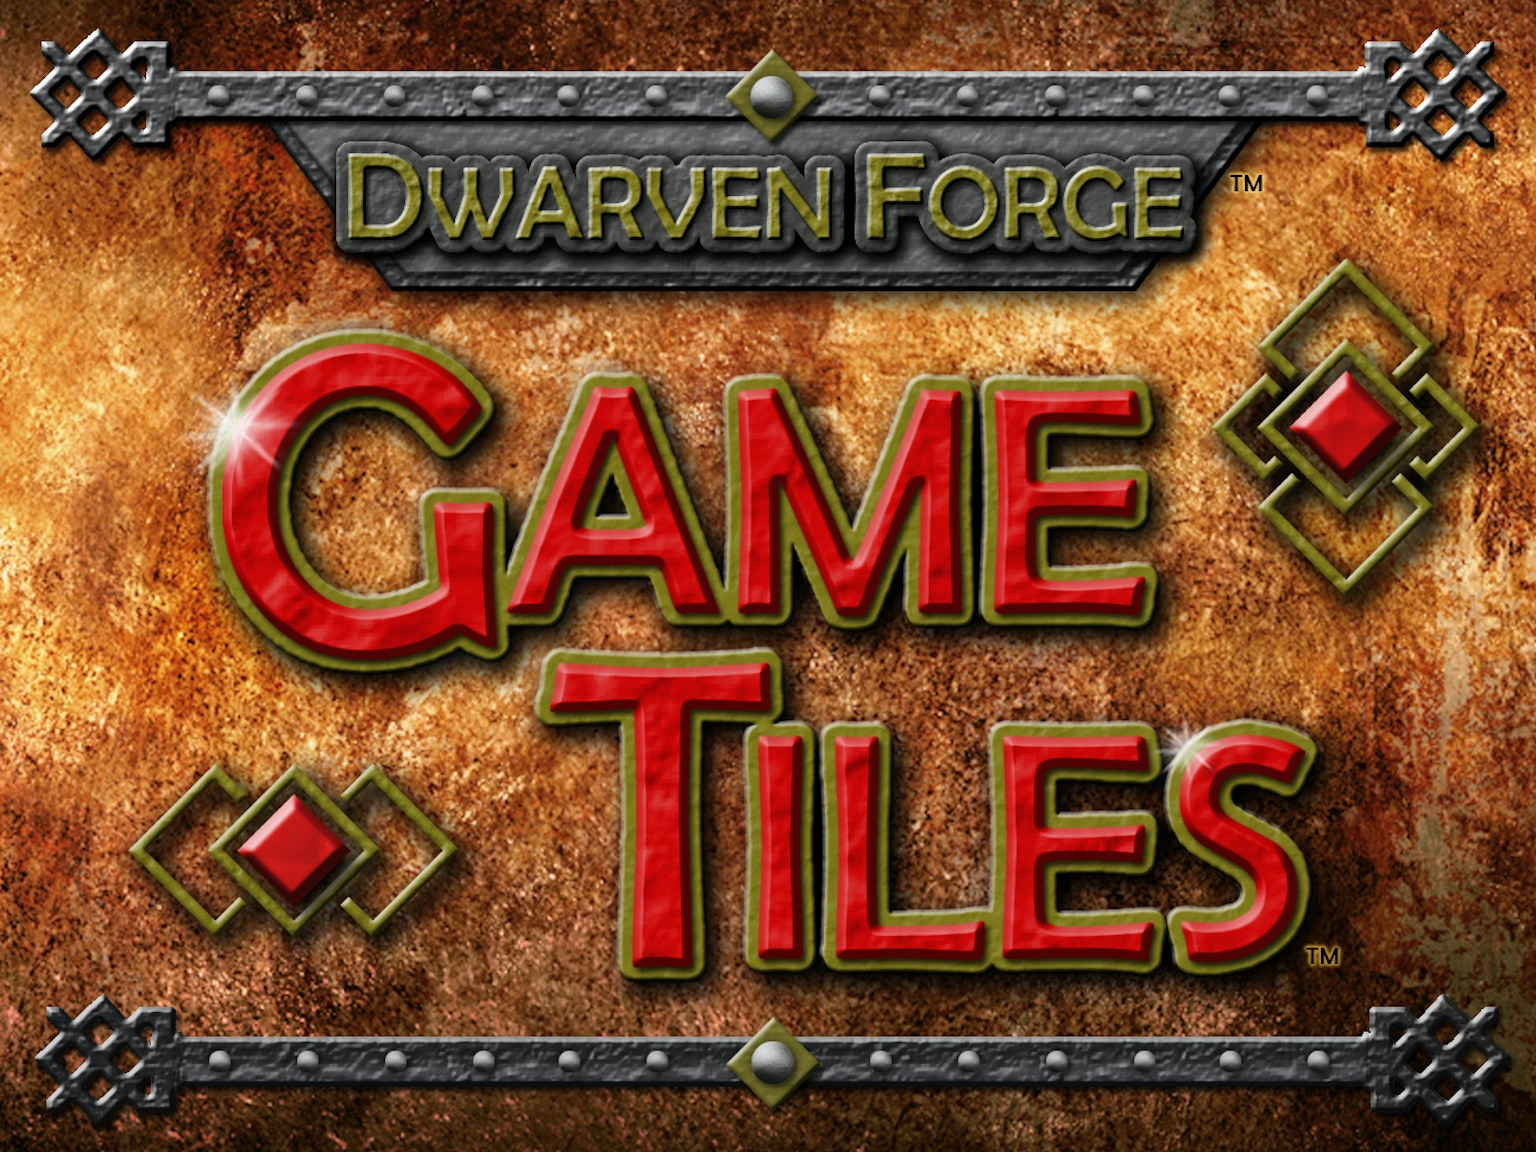 Dwarven Forge: Game Tiles